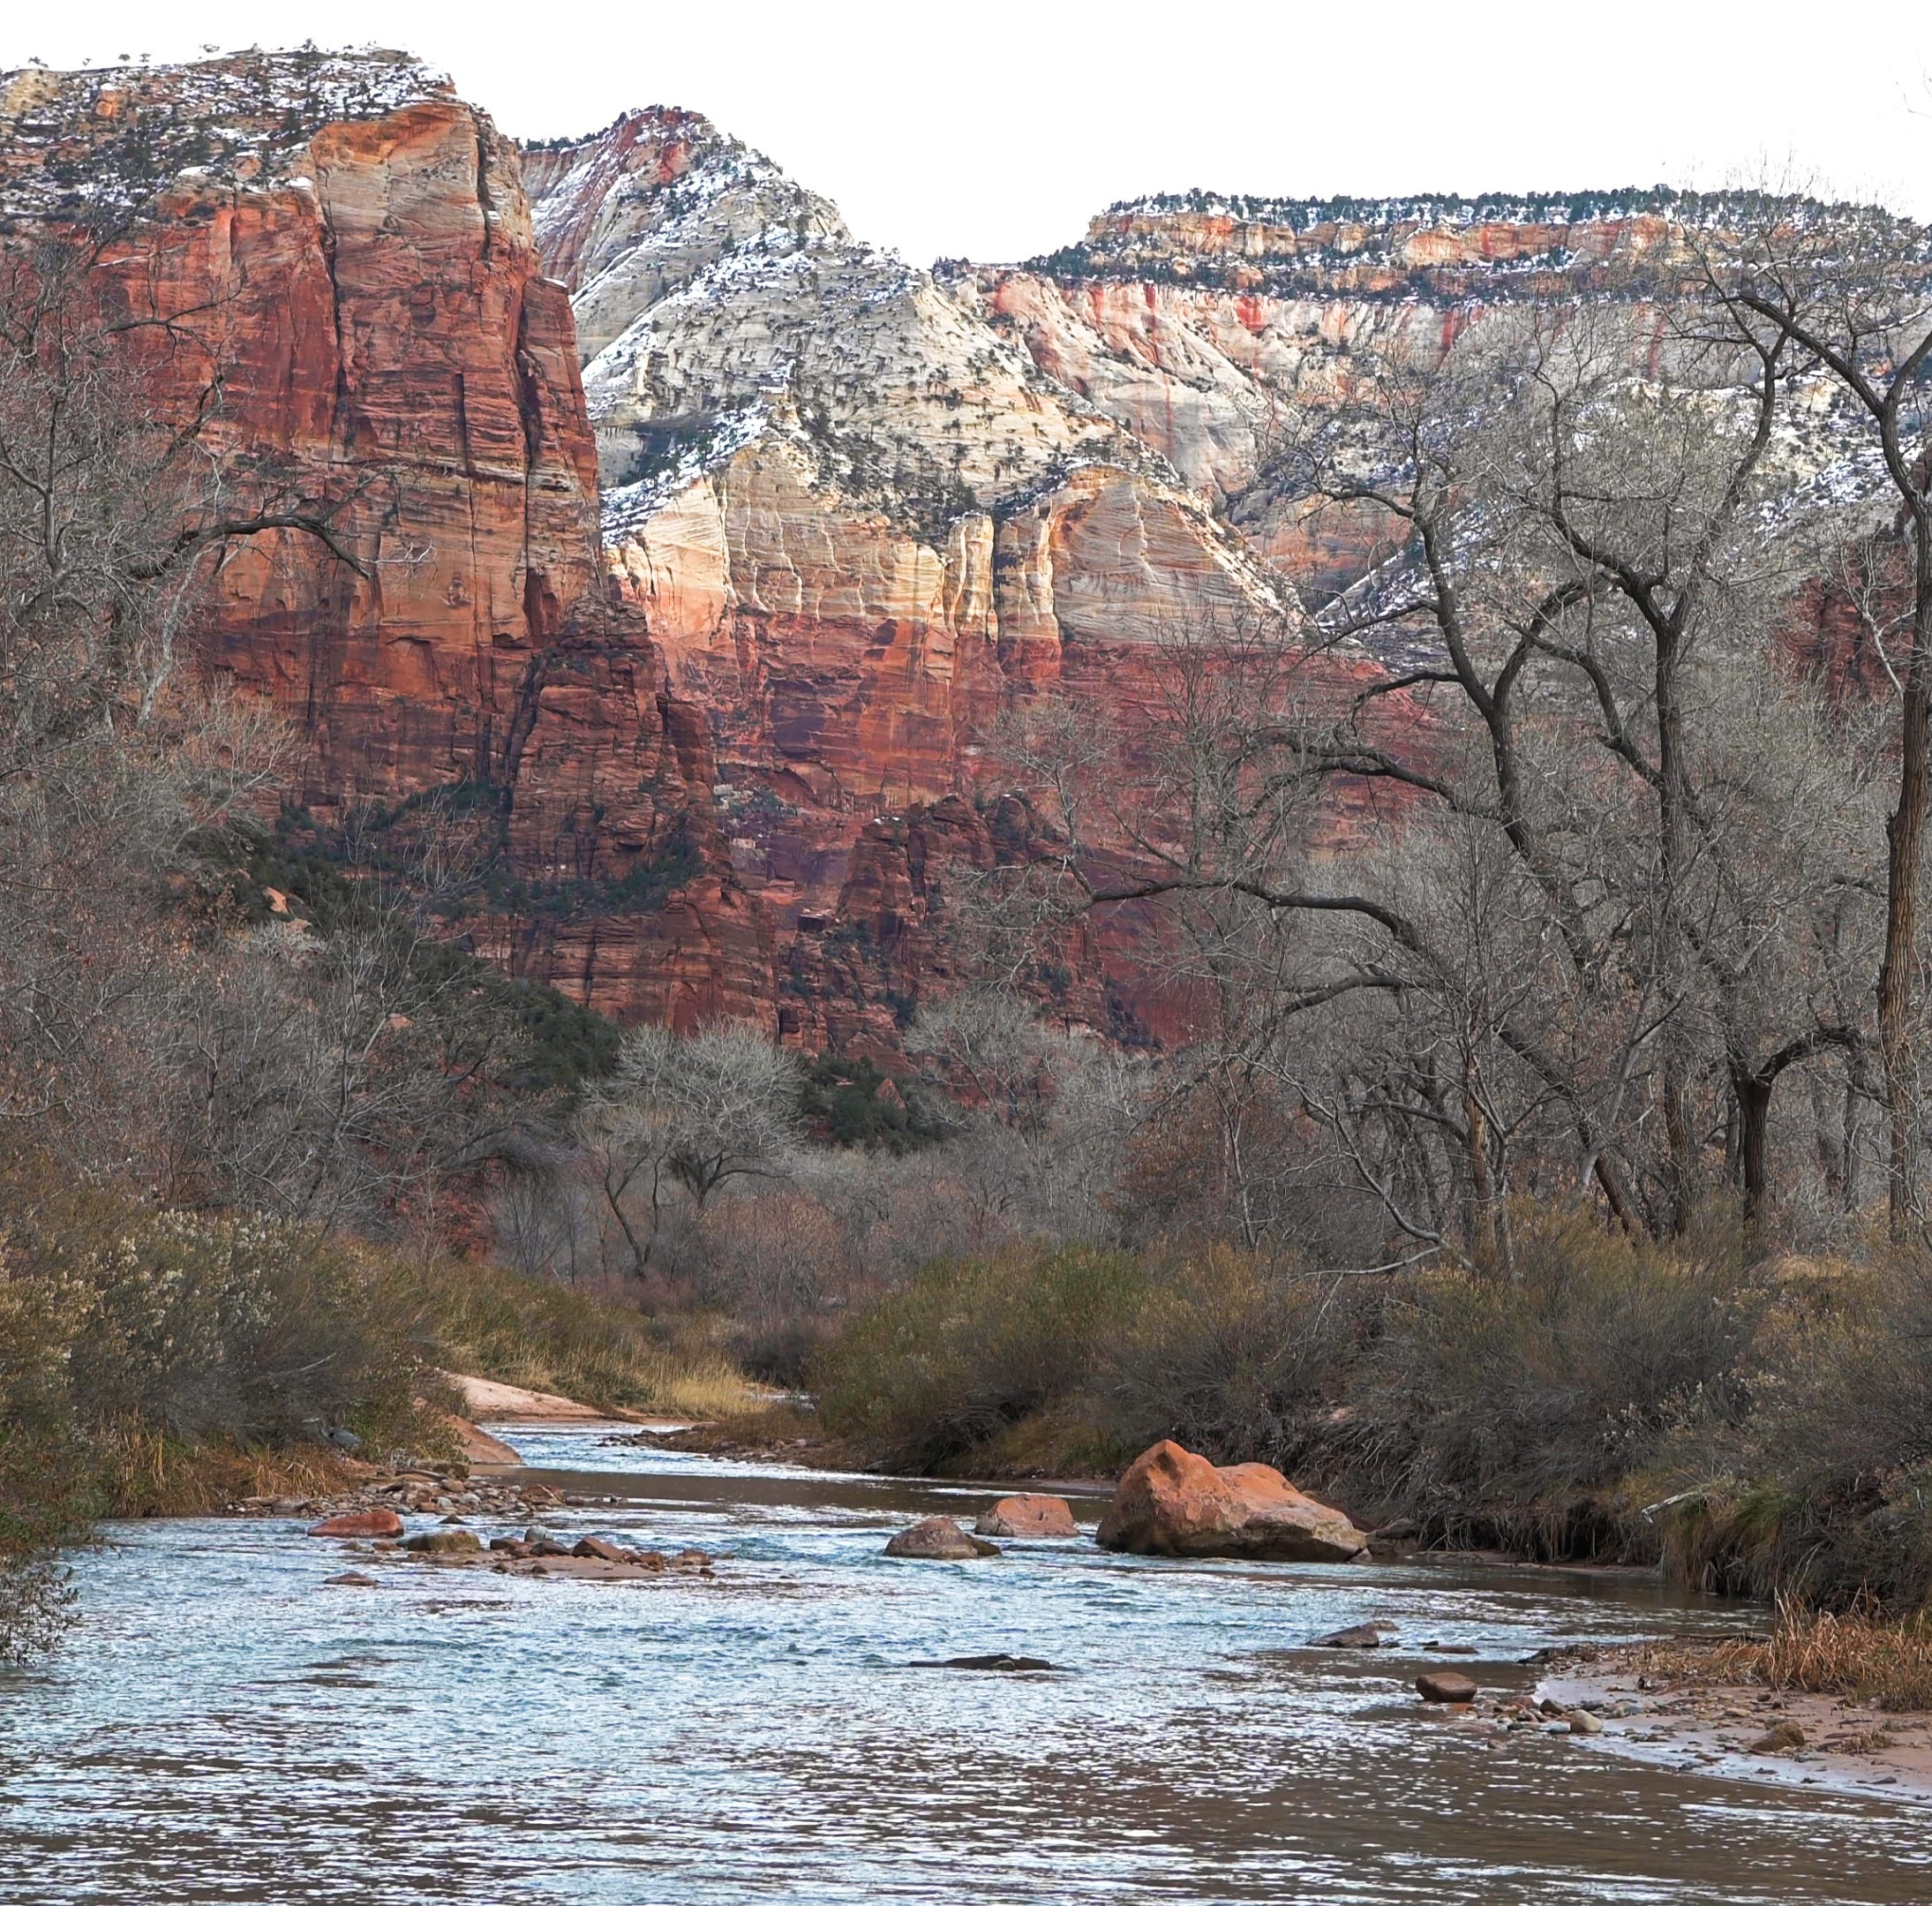 Man caught in quicksand at Zion National Park spends two days in winter conditions